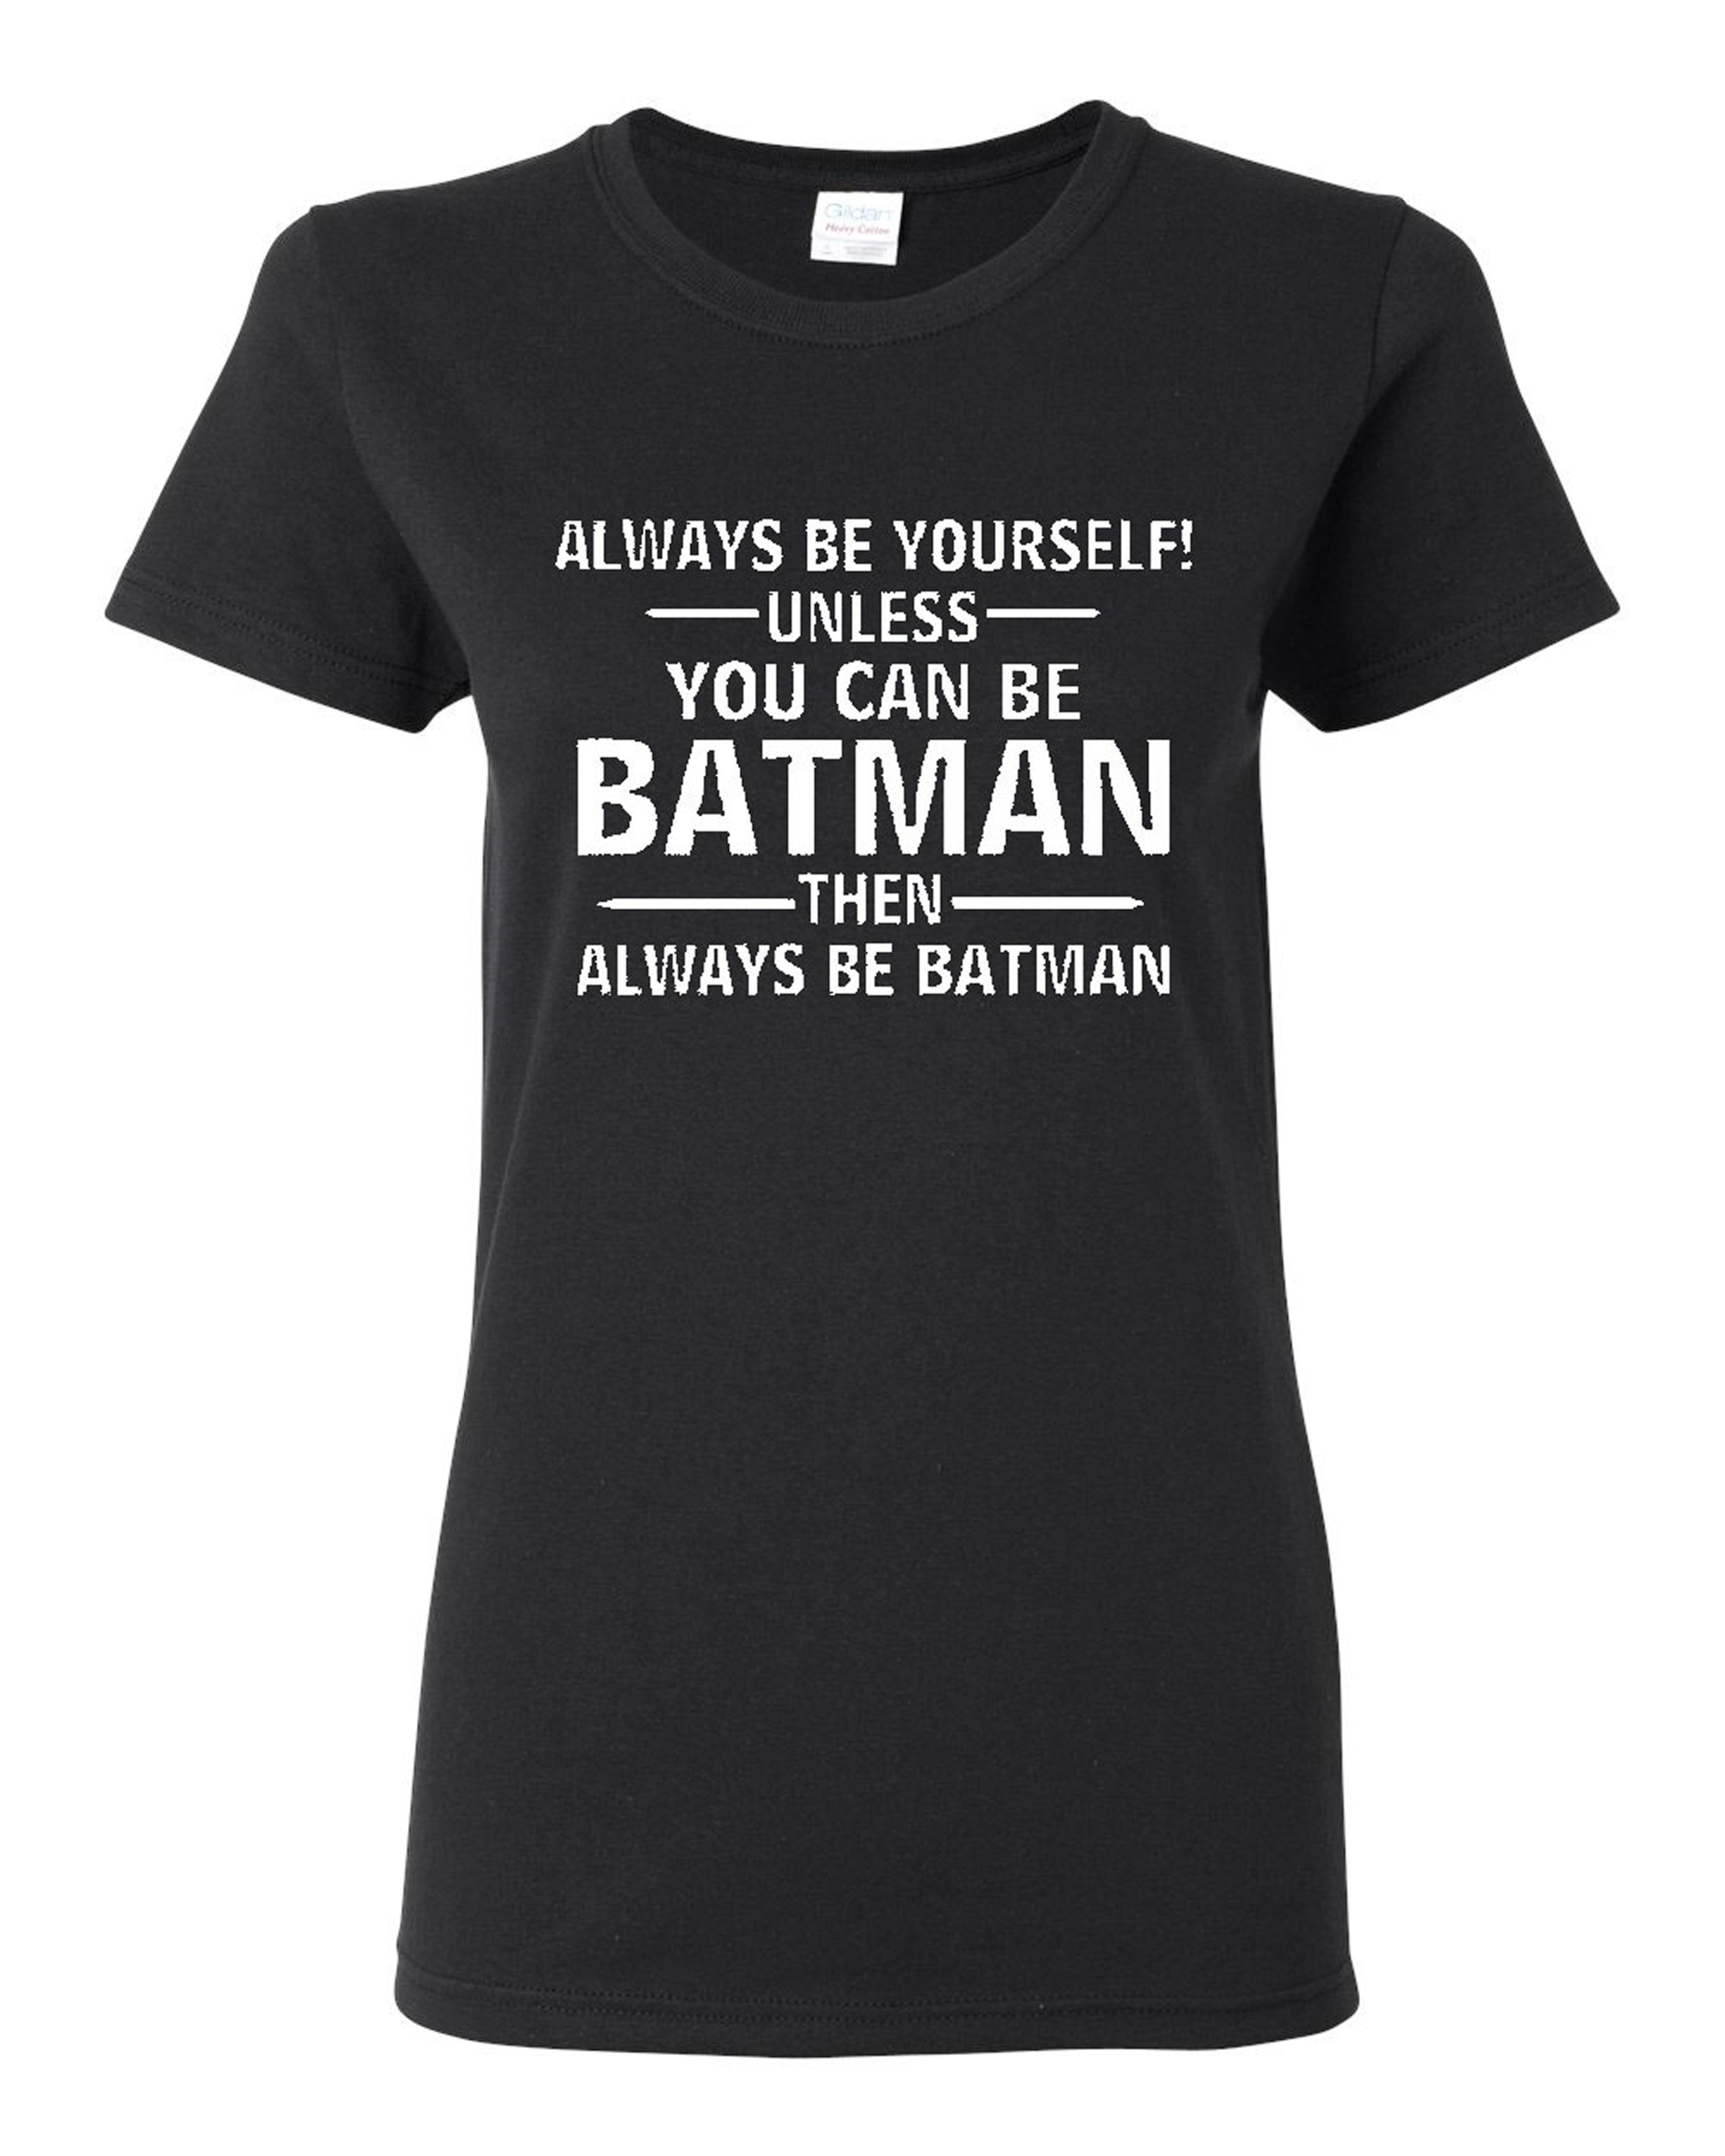 Ladies Always Be Yourself Unless You Can Be Batman T-Shirt Tee